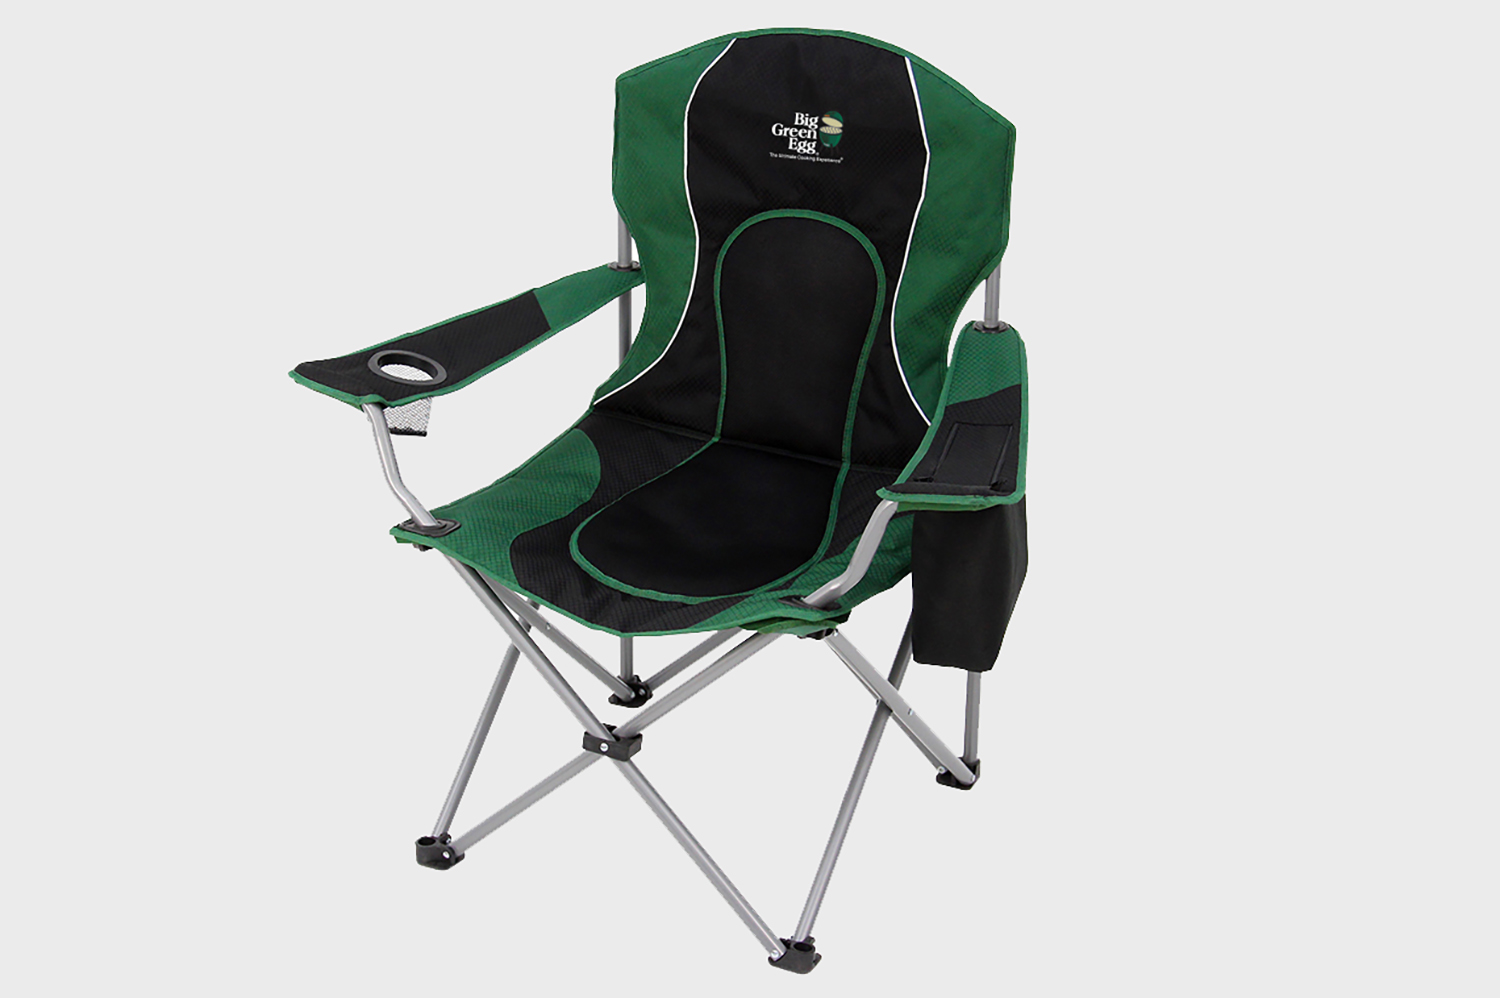 big green egg chair